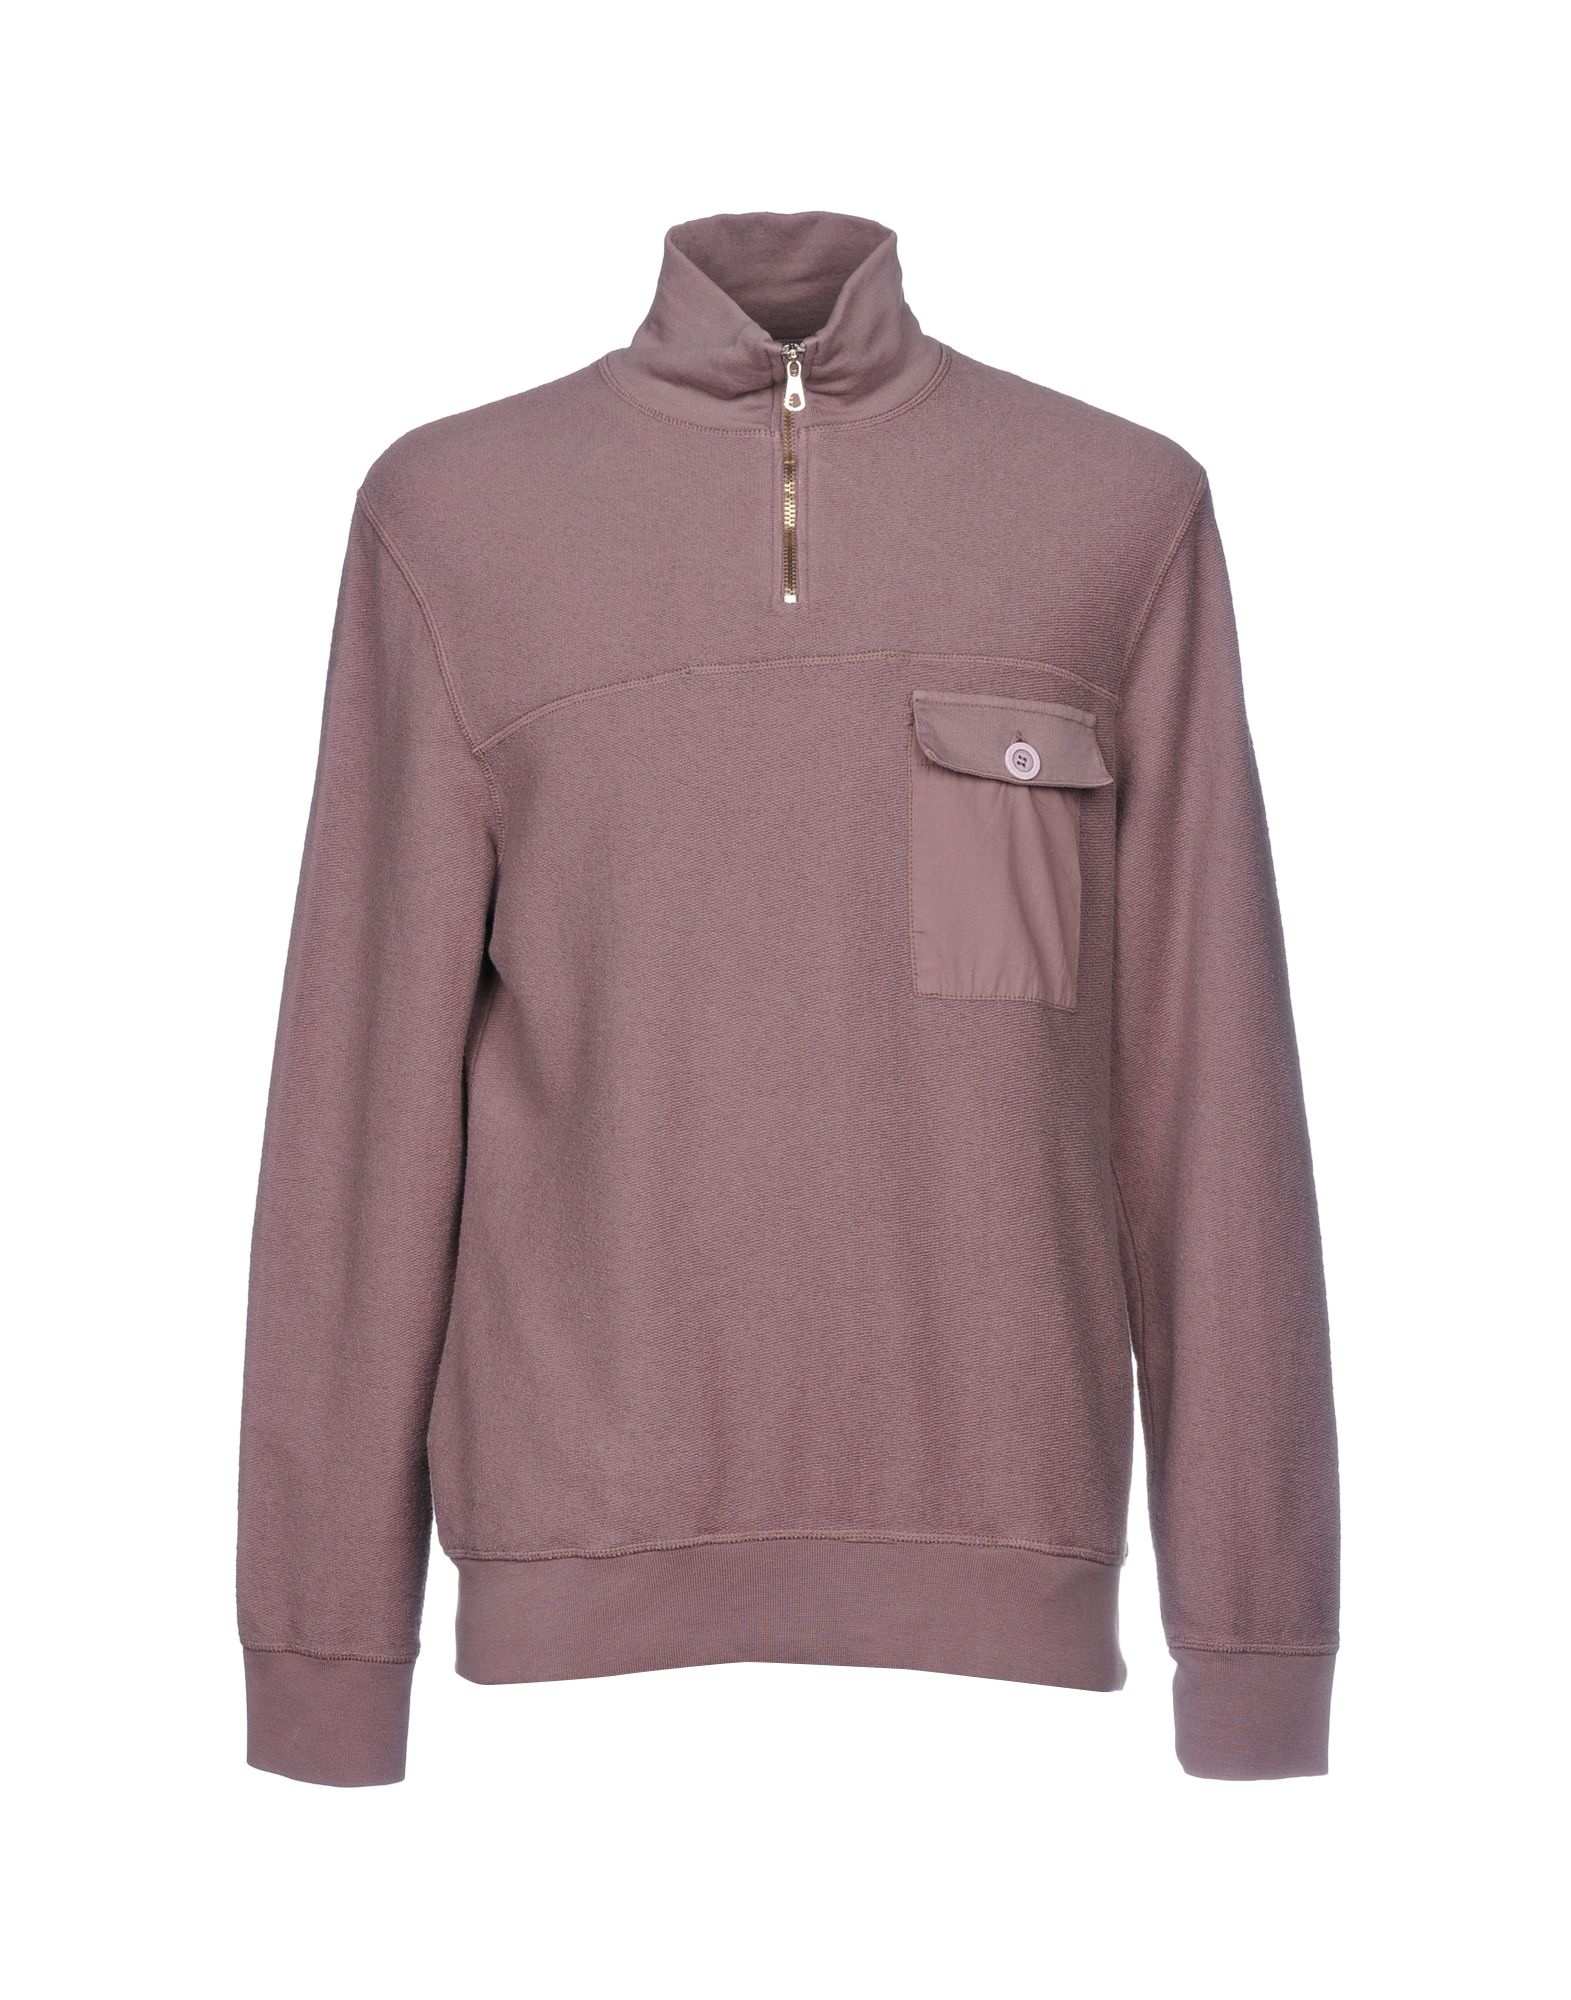 TRÈS BIEN Sweatshirt in Light Purple